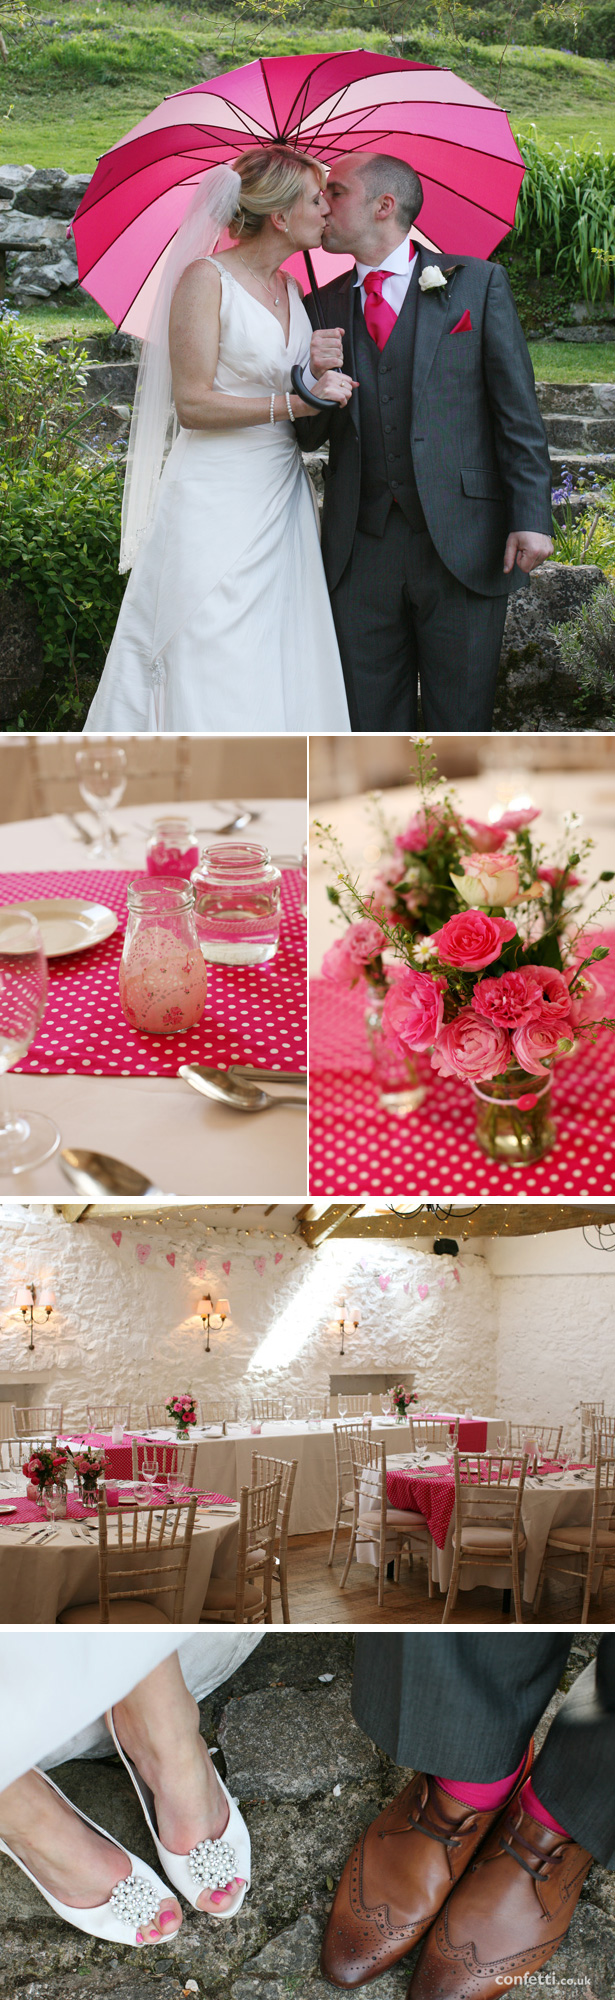 Laura and Matt's Pink and Polka Dot Real Wedding | Confetti.co.uk